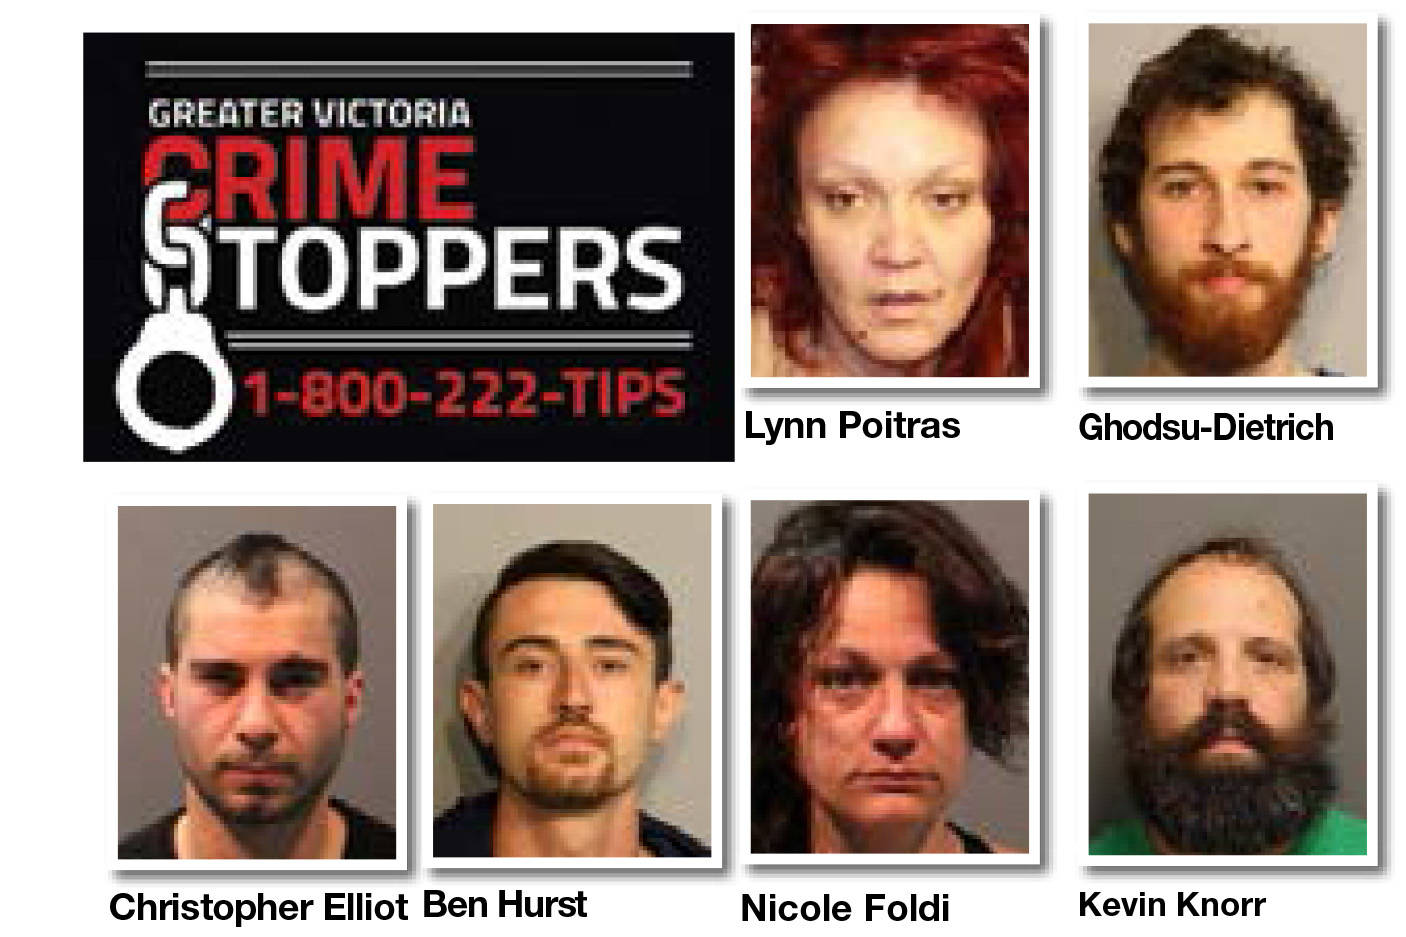 Greater Victoria Crime Stoppers wanted list for the week of